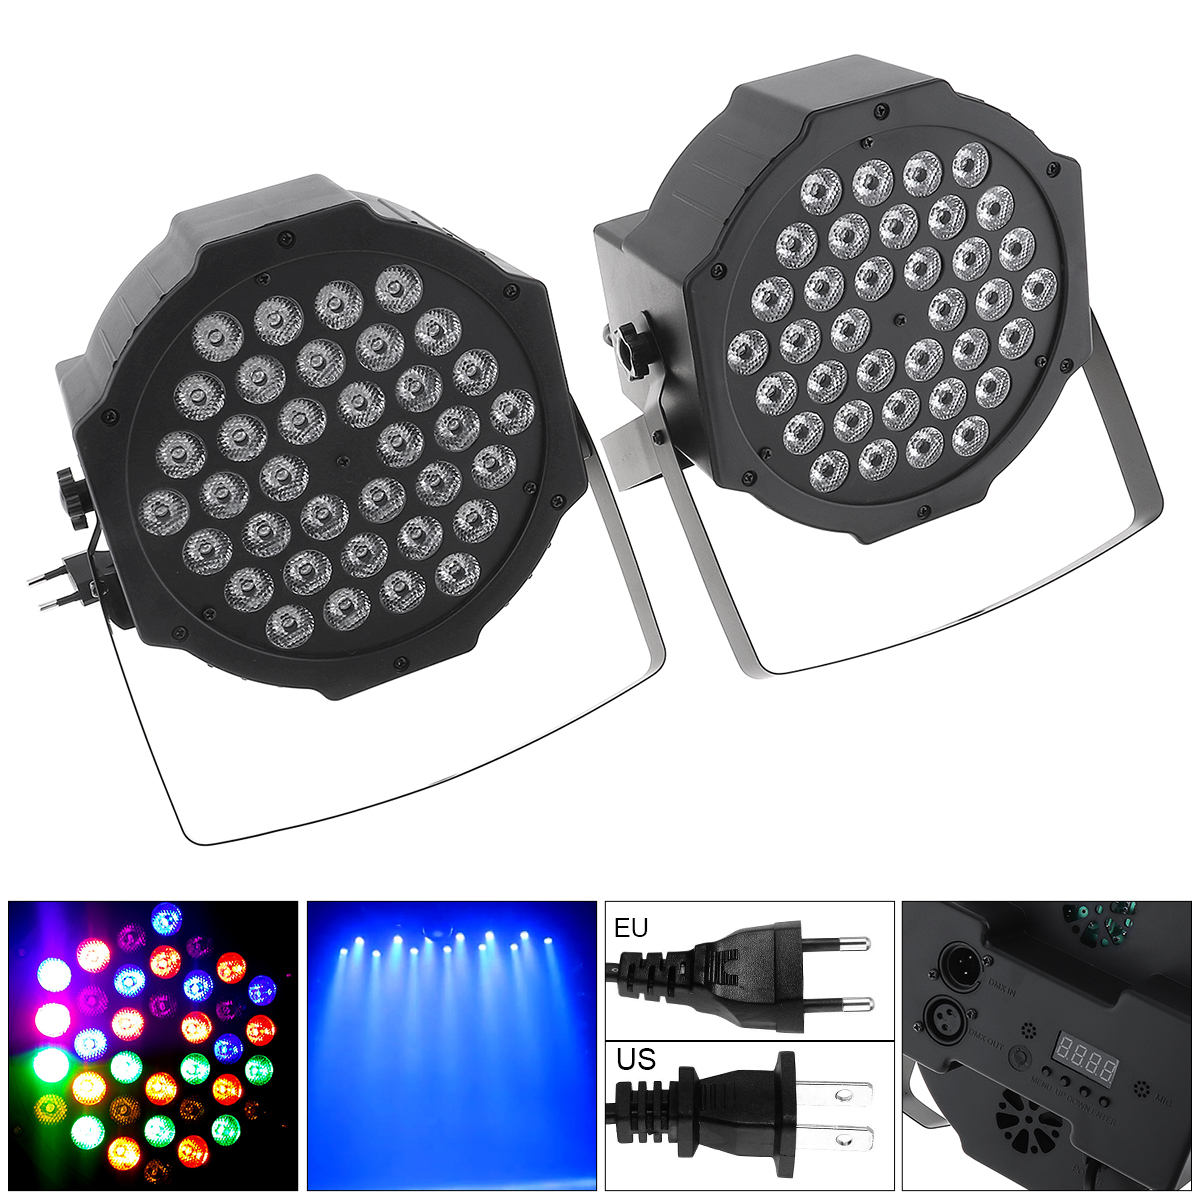 2pcs 36 LEDs RGB Stage Light Effect Stroboscope Flash Lamp With Stand And DMX Interface For Disco / Stage / Bar Effect